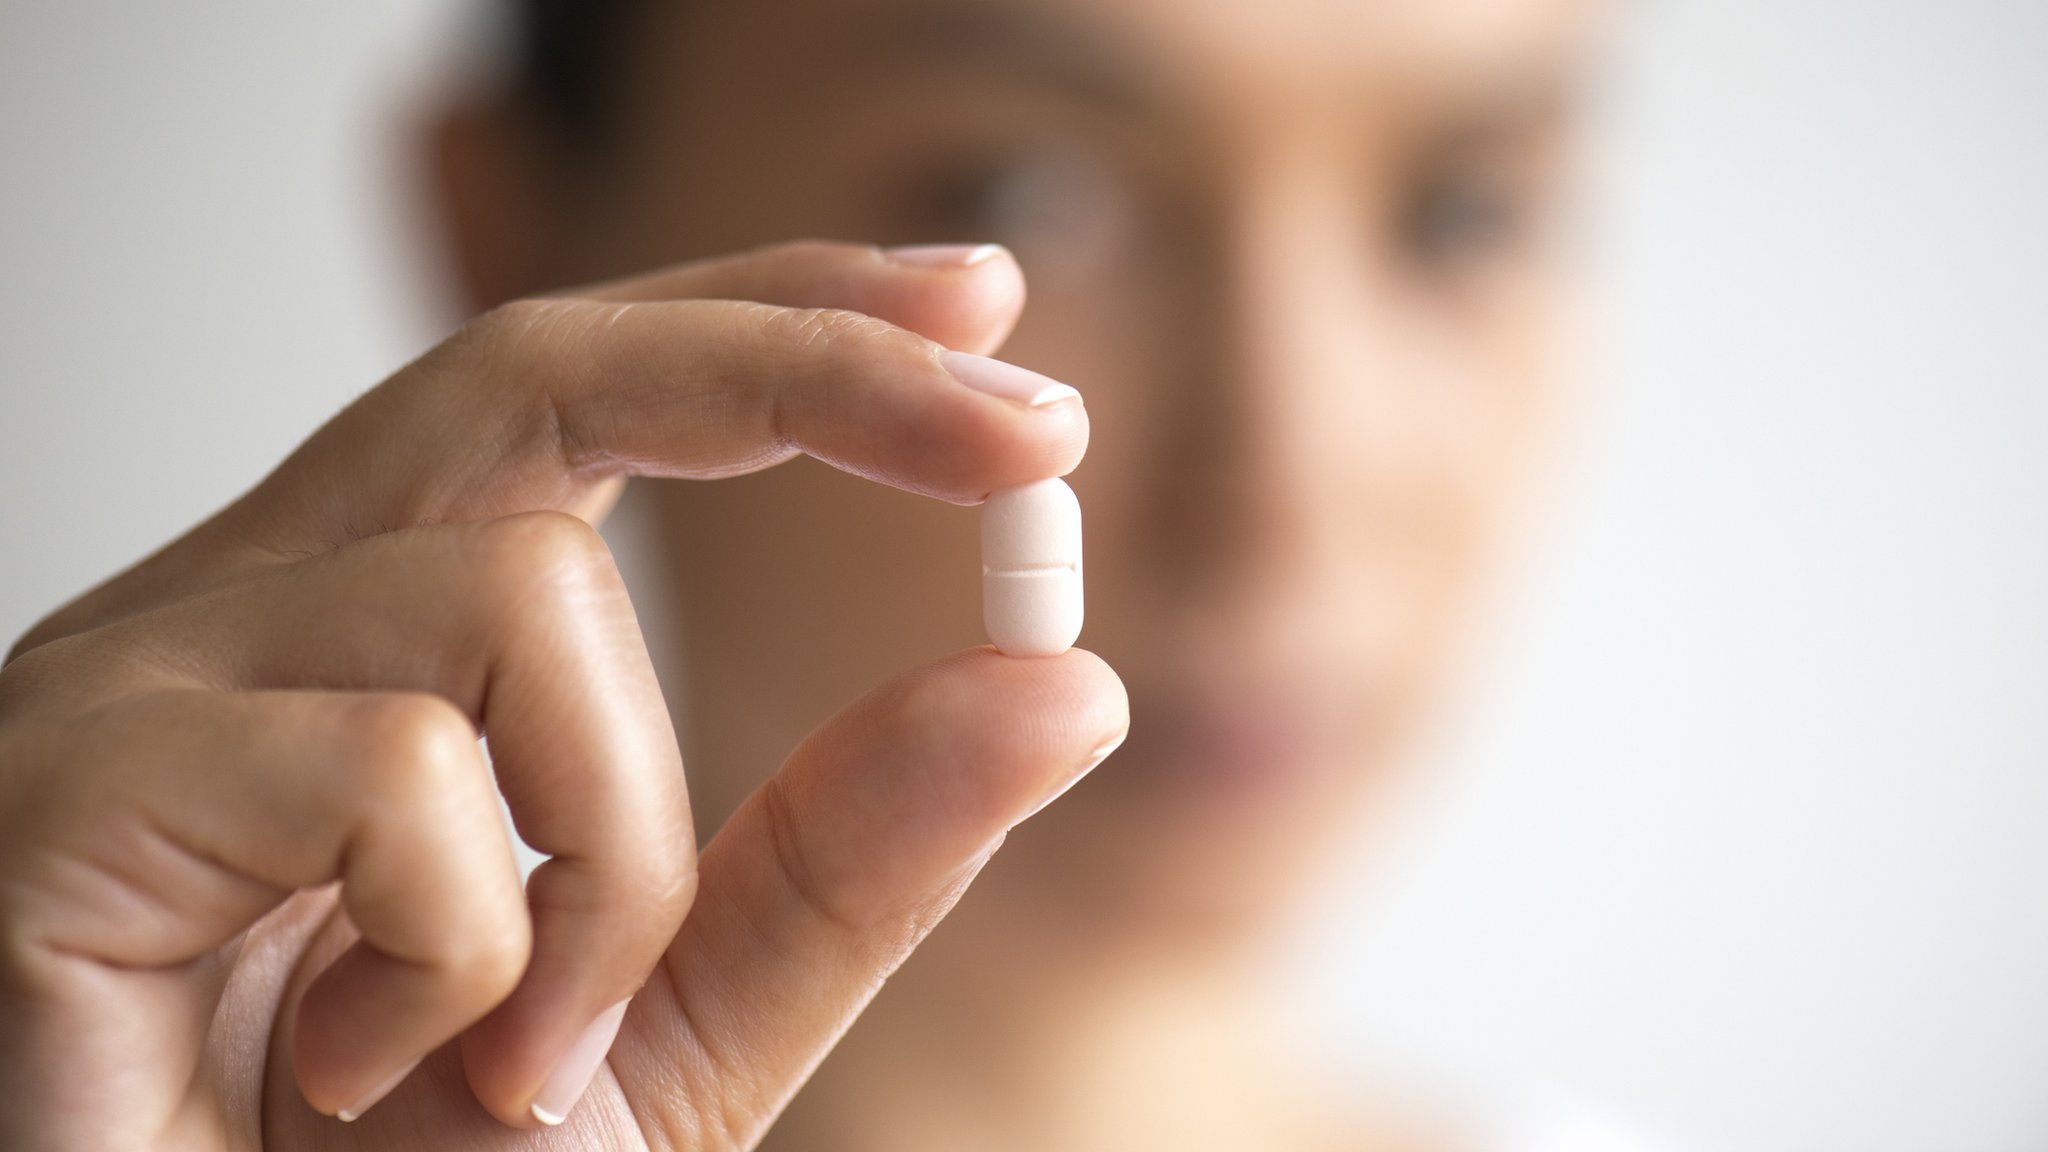 Cheap common drugs may help mental illness